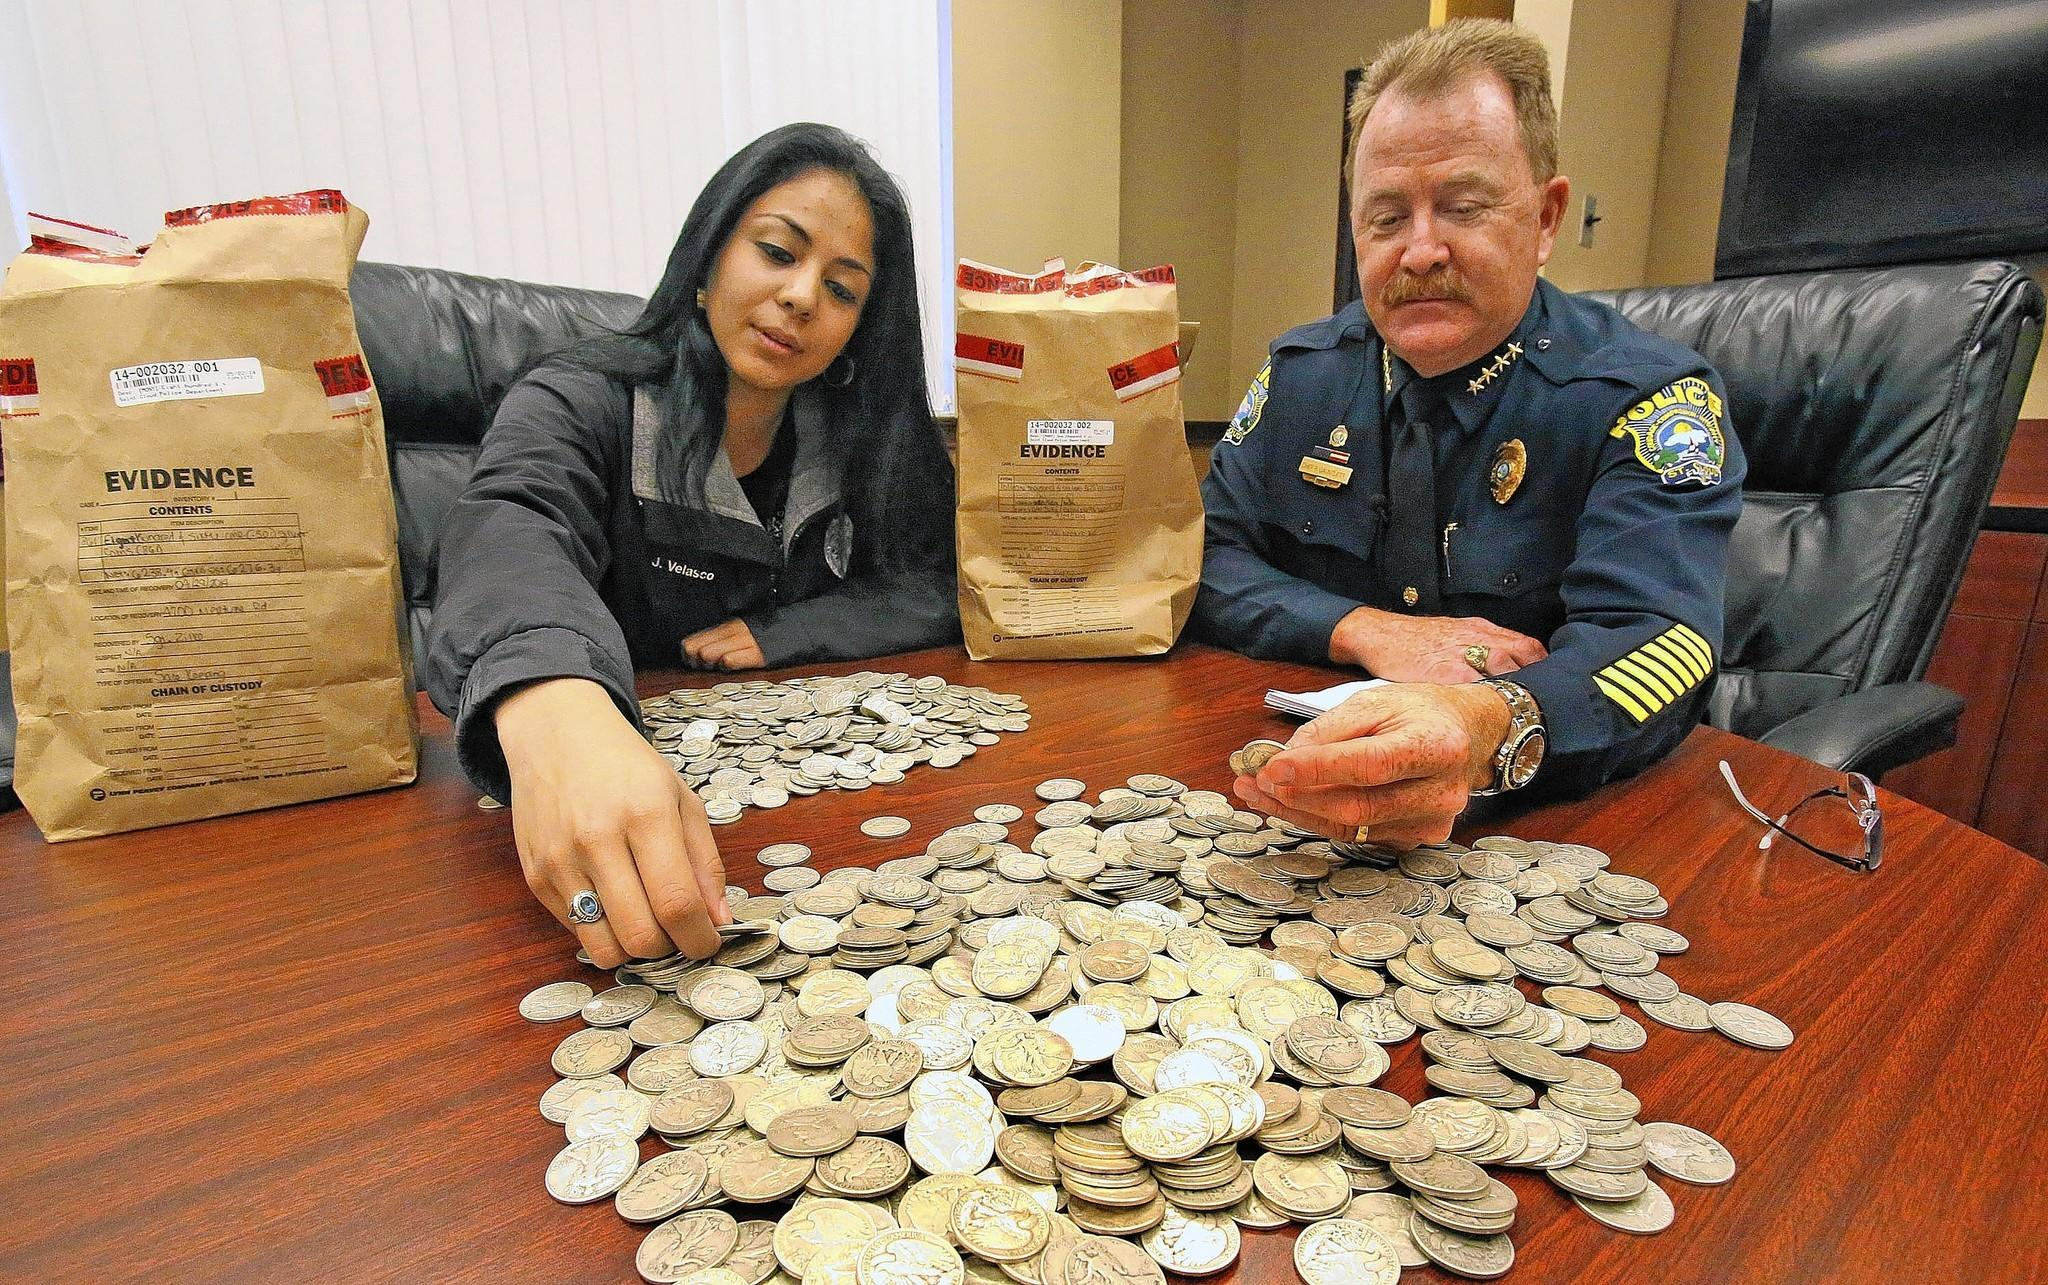 St. Cloud police crime-scene technician Jessica Velasco and Chief Pete Gauntlett sort some of the thousands of silver coins found in a condemned house.